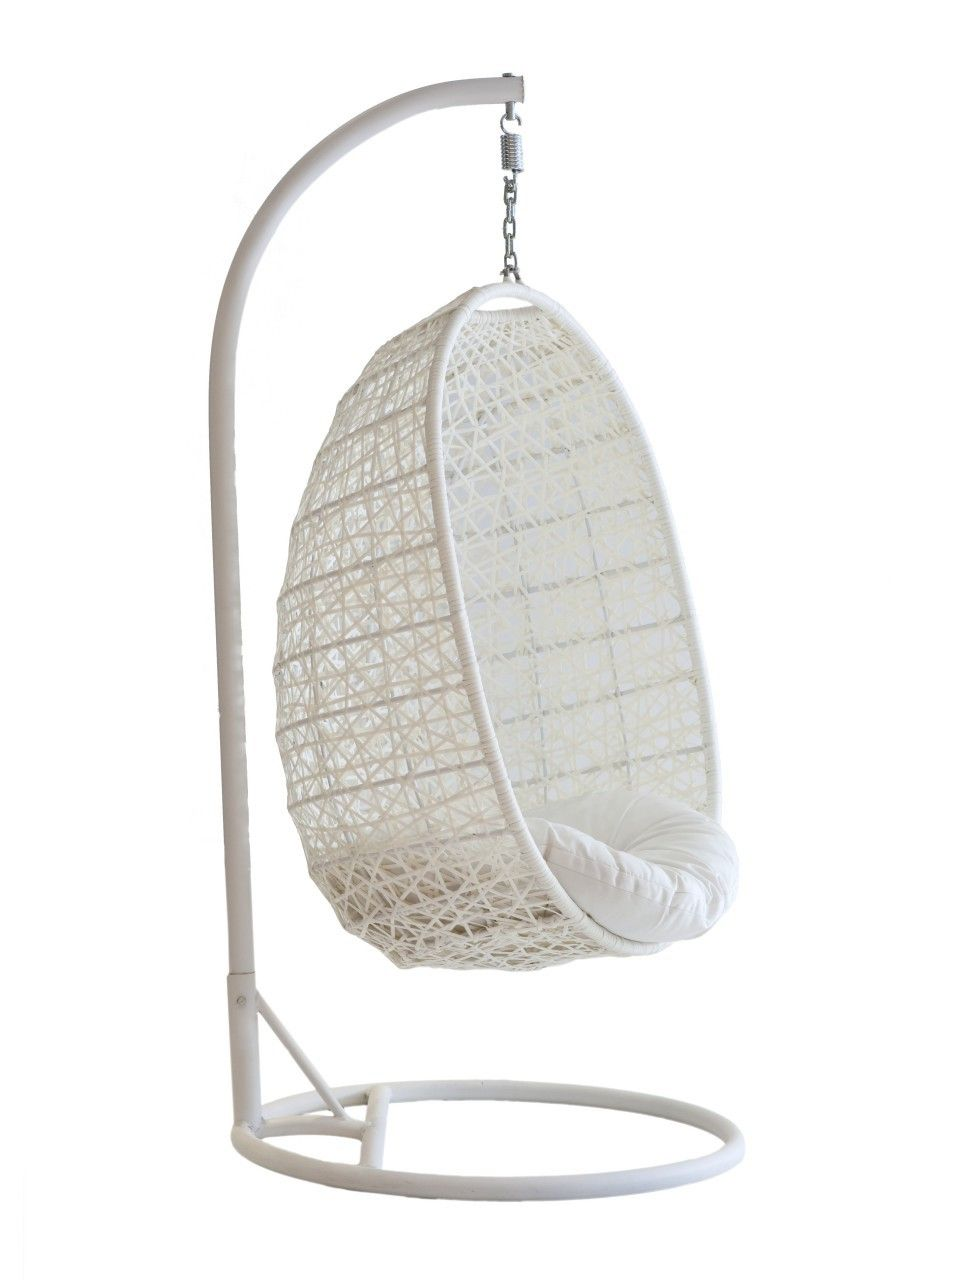 Indoor Hanging Chair With Stand Charming White Viva Design Cora Hanging Chair Design With Stand